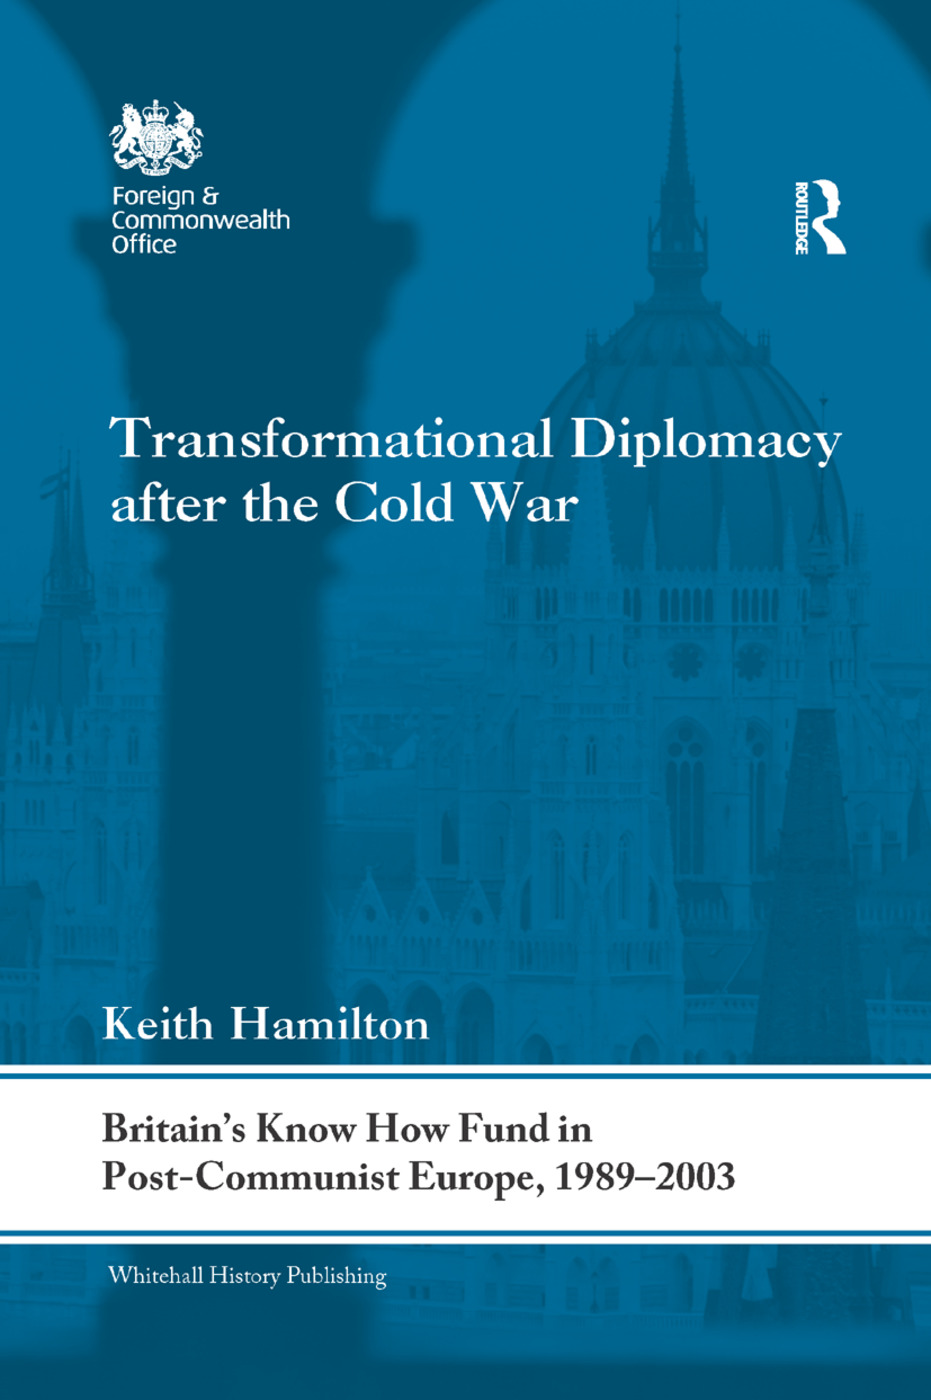 Transformational Diplomacy after the Cold War: Britain's Know How Fund in Post-Communist Europe, 1989-2003 book cover